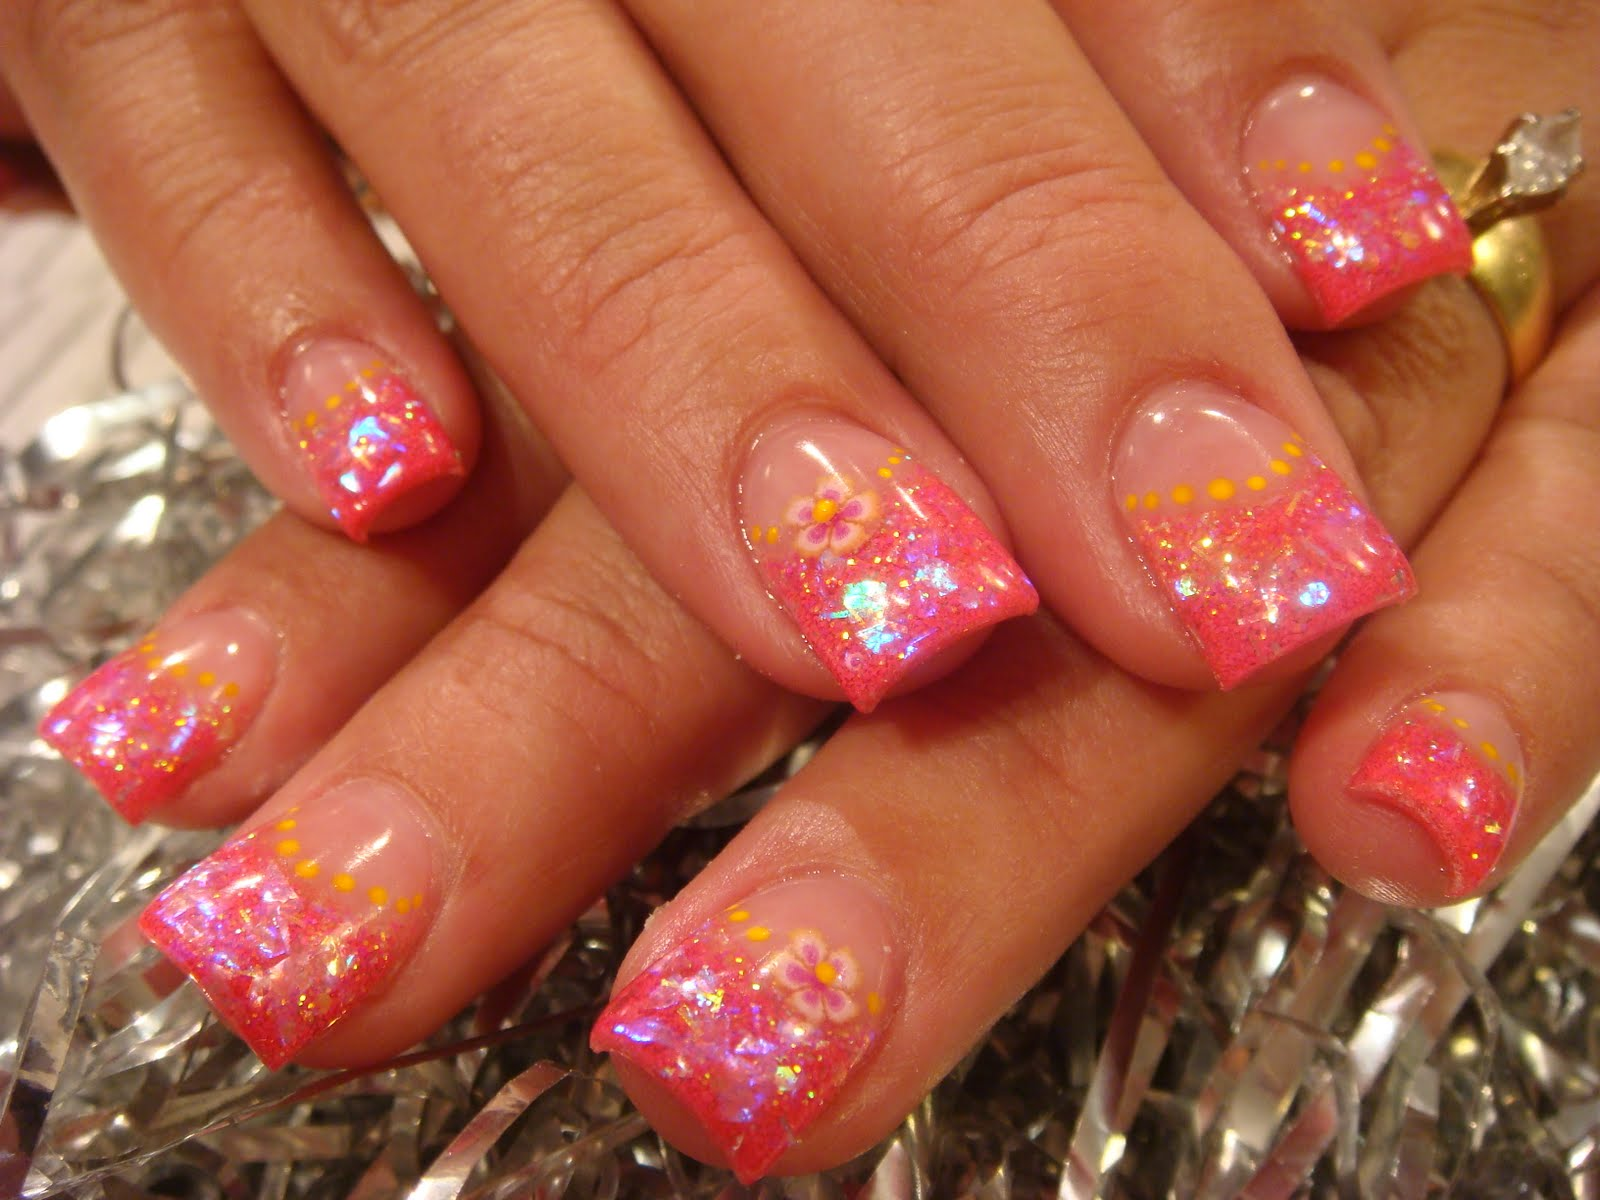 This is impression nail art with spring colors.